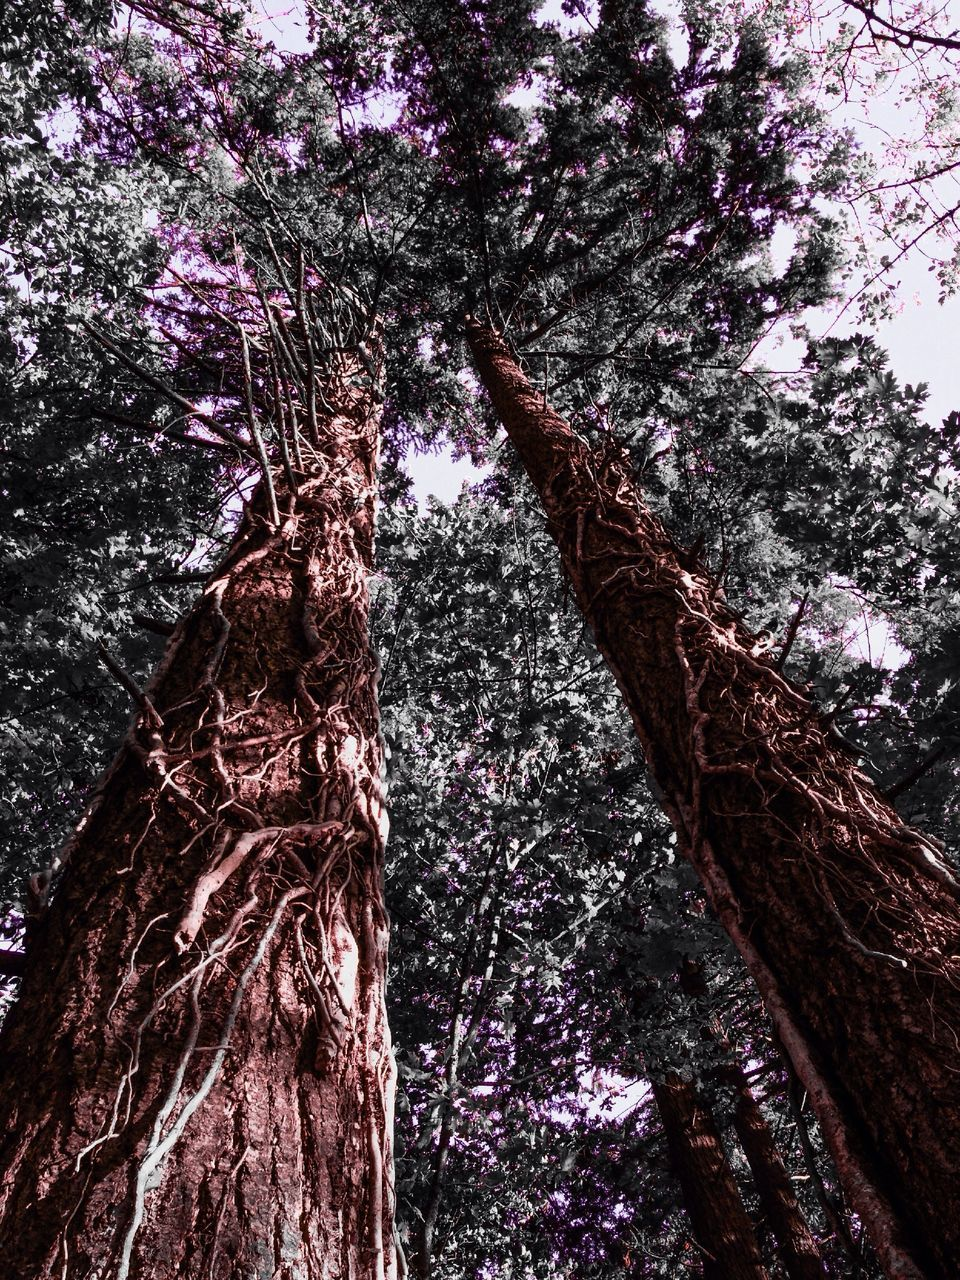 tree, tree trunk, low angle view, growth, nature, branch, bark, beauty in nature, day, no people, outdoors, tree canopy, forest, climbing, flower, sky, close-up